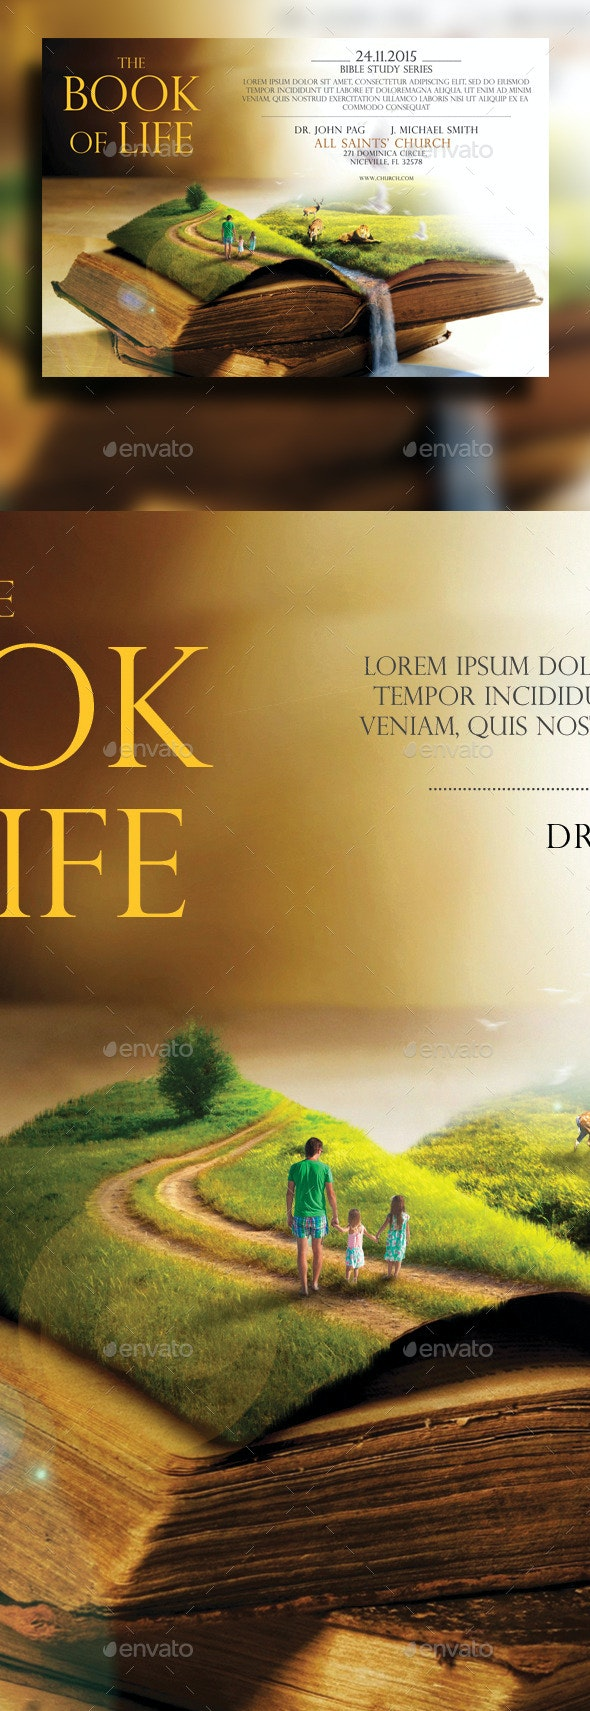 The Book Of Life Flyer - Church Flyers